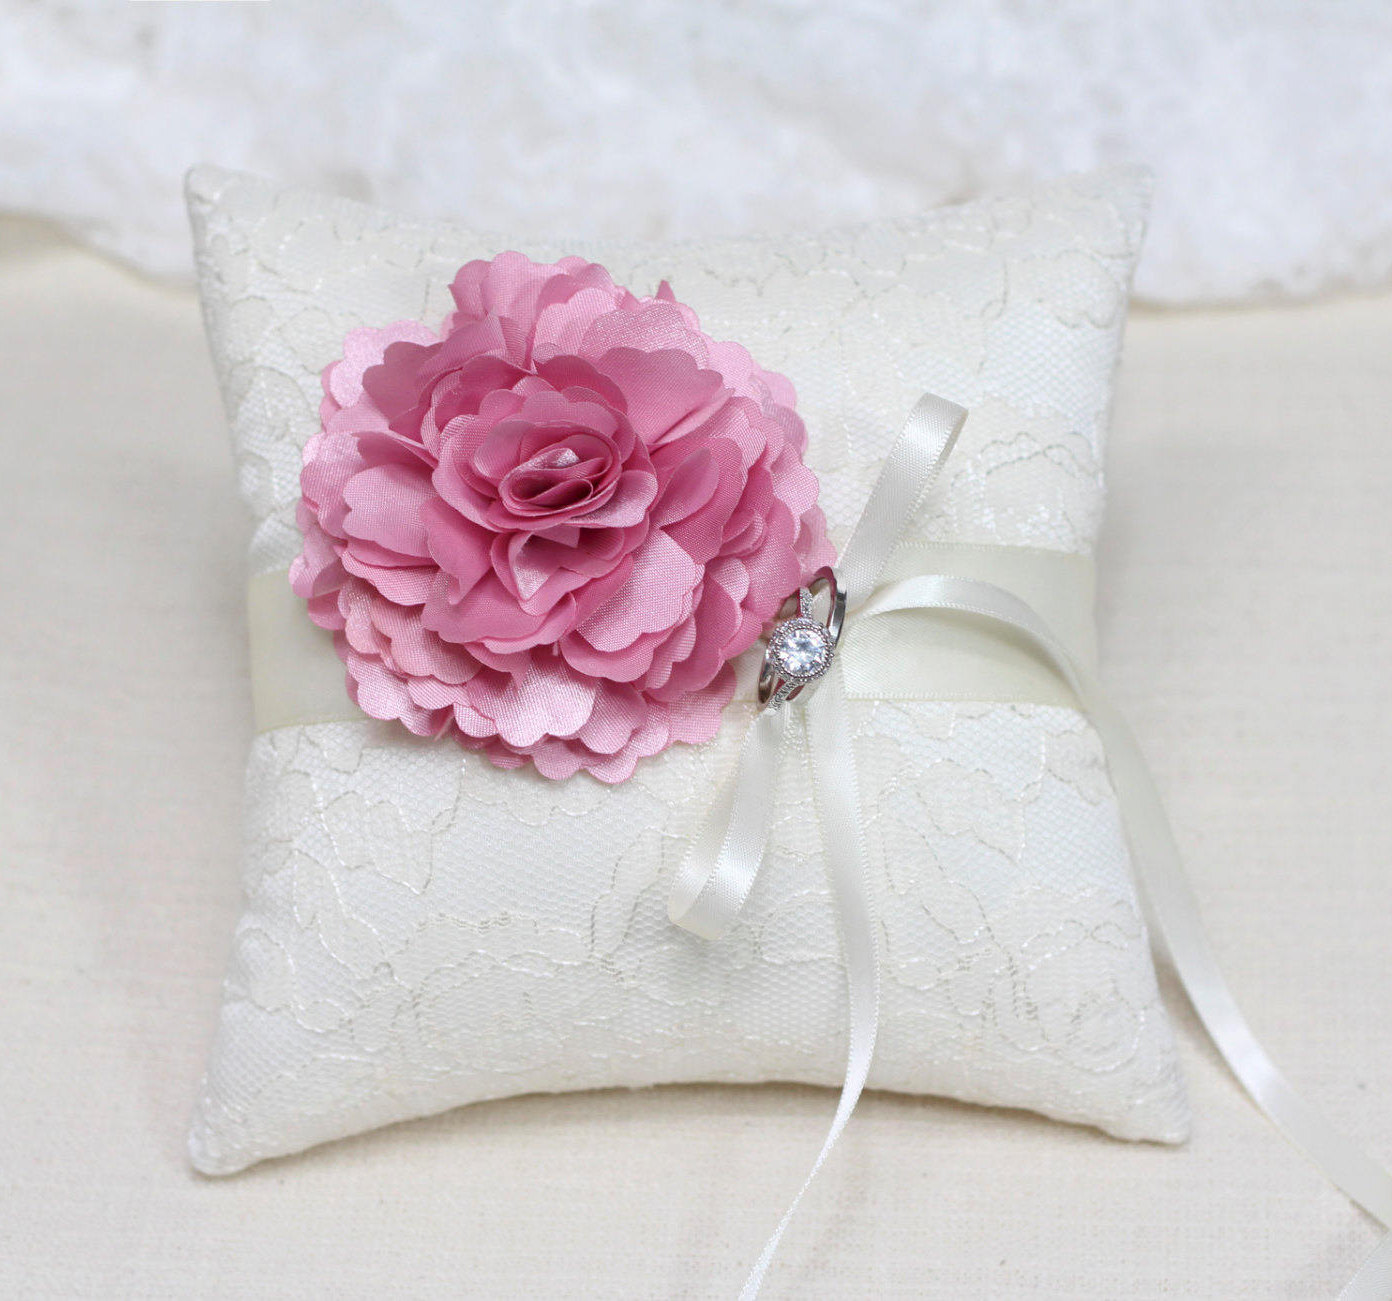 Wedding ring bearer pillow pink flower on ivory lace ring